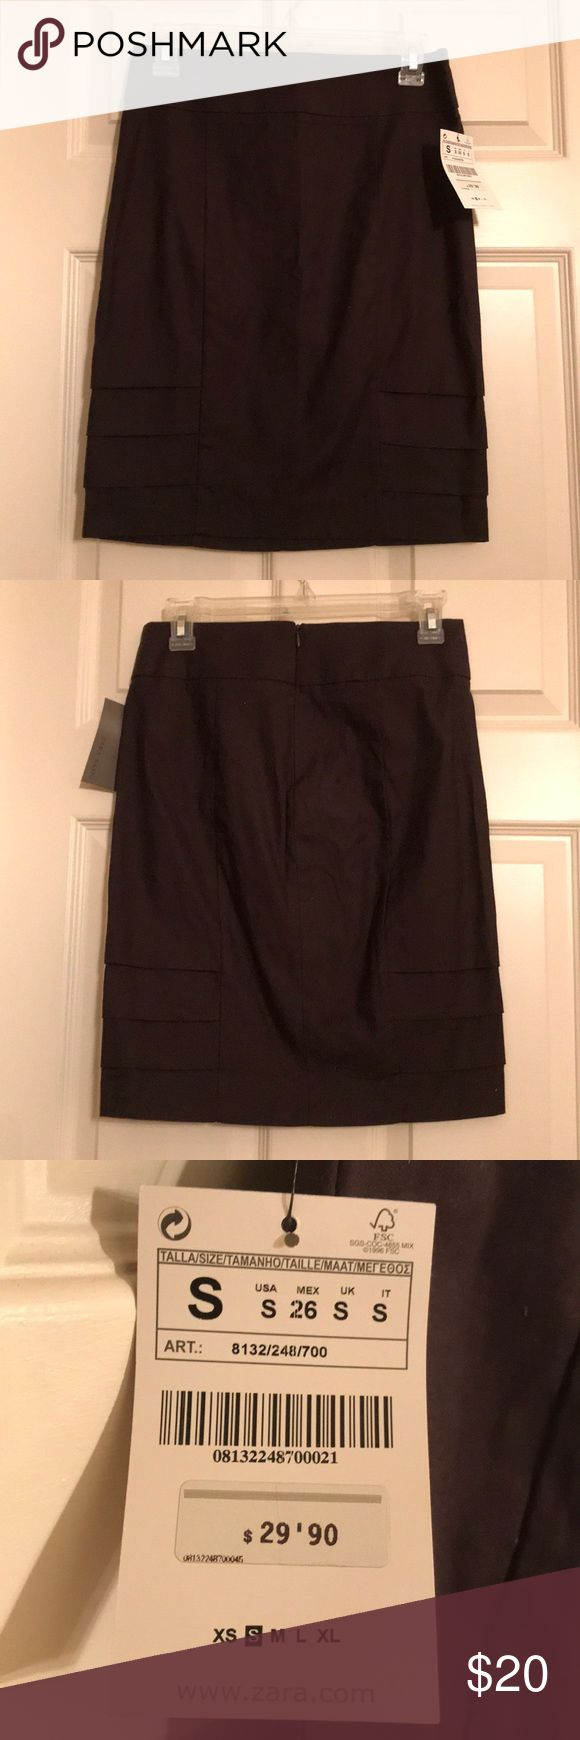 Brown pencil skirt Zara Basics brown pencil skirt never been worn tags on zipper in the back! Zara Skirts Pencil